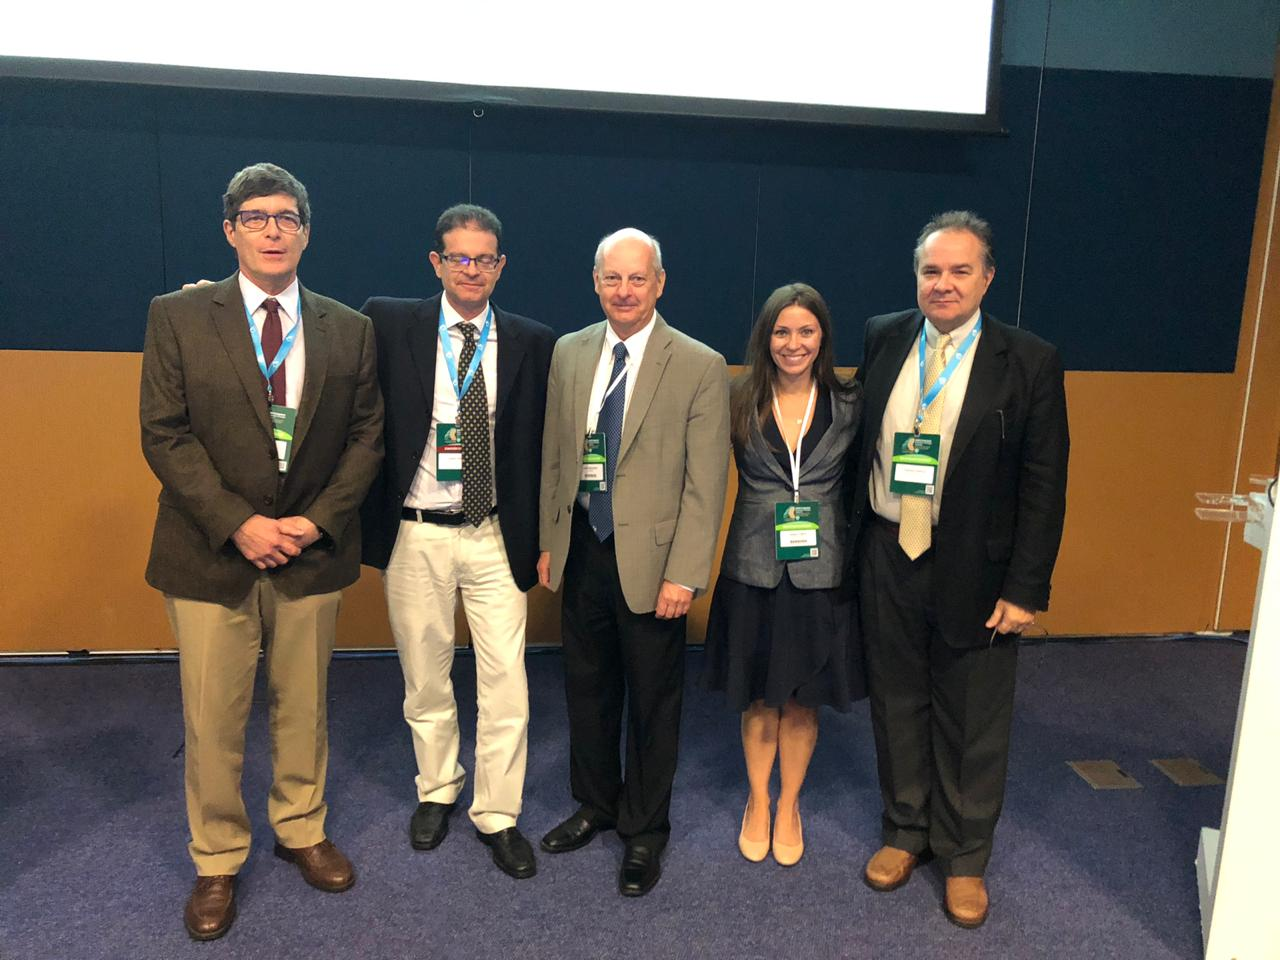 The course of Int Braz J Urol during the XXXVII Brazilian Congress of Urology was a sucess